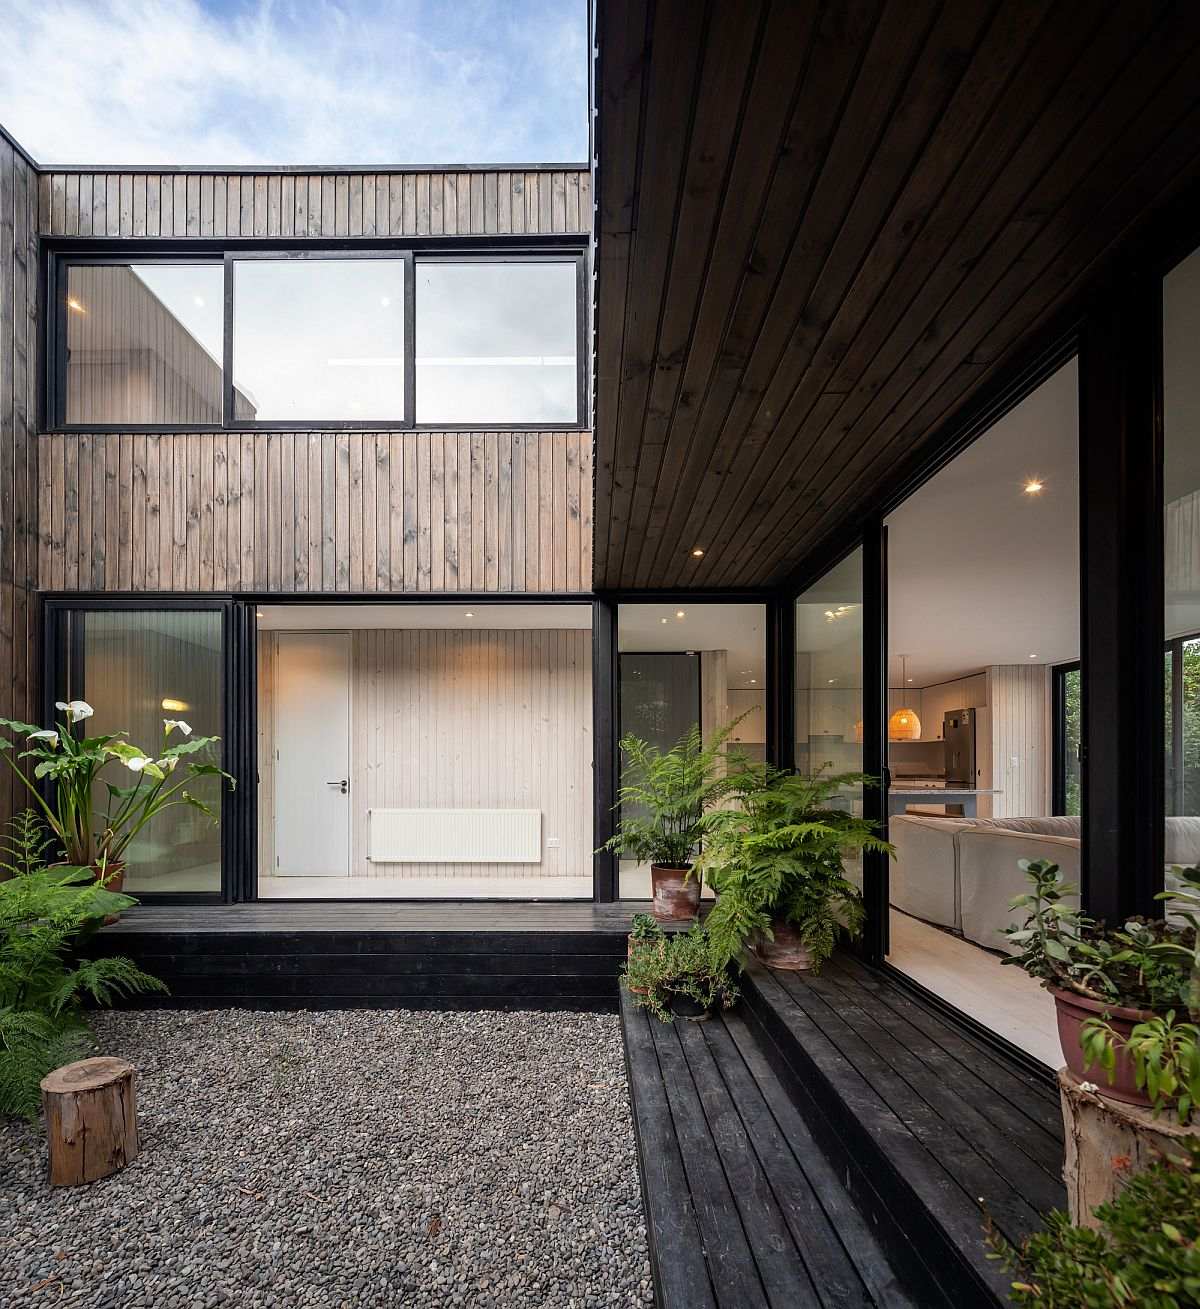 Sliding glass doors with steel frame and wood shape the exterior of the house